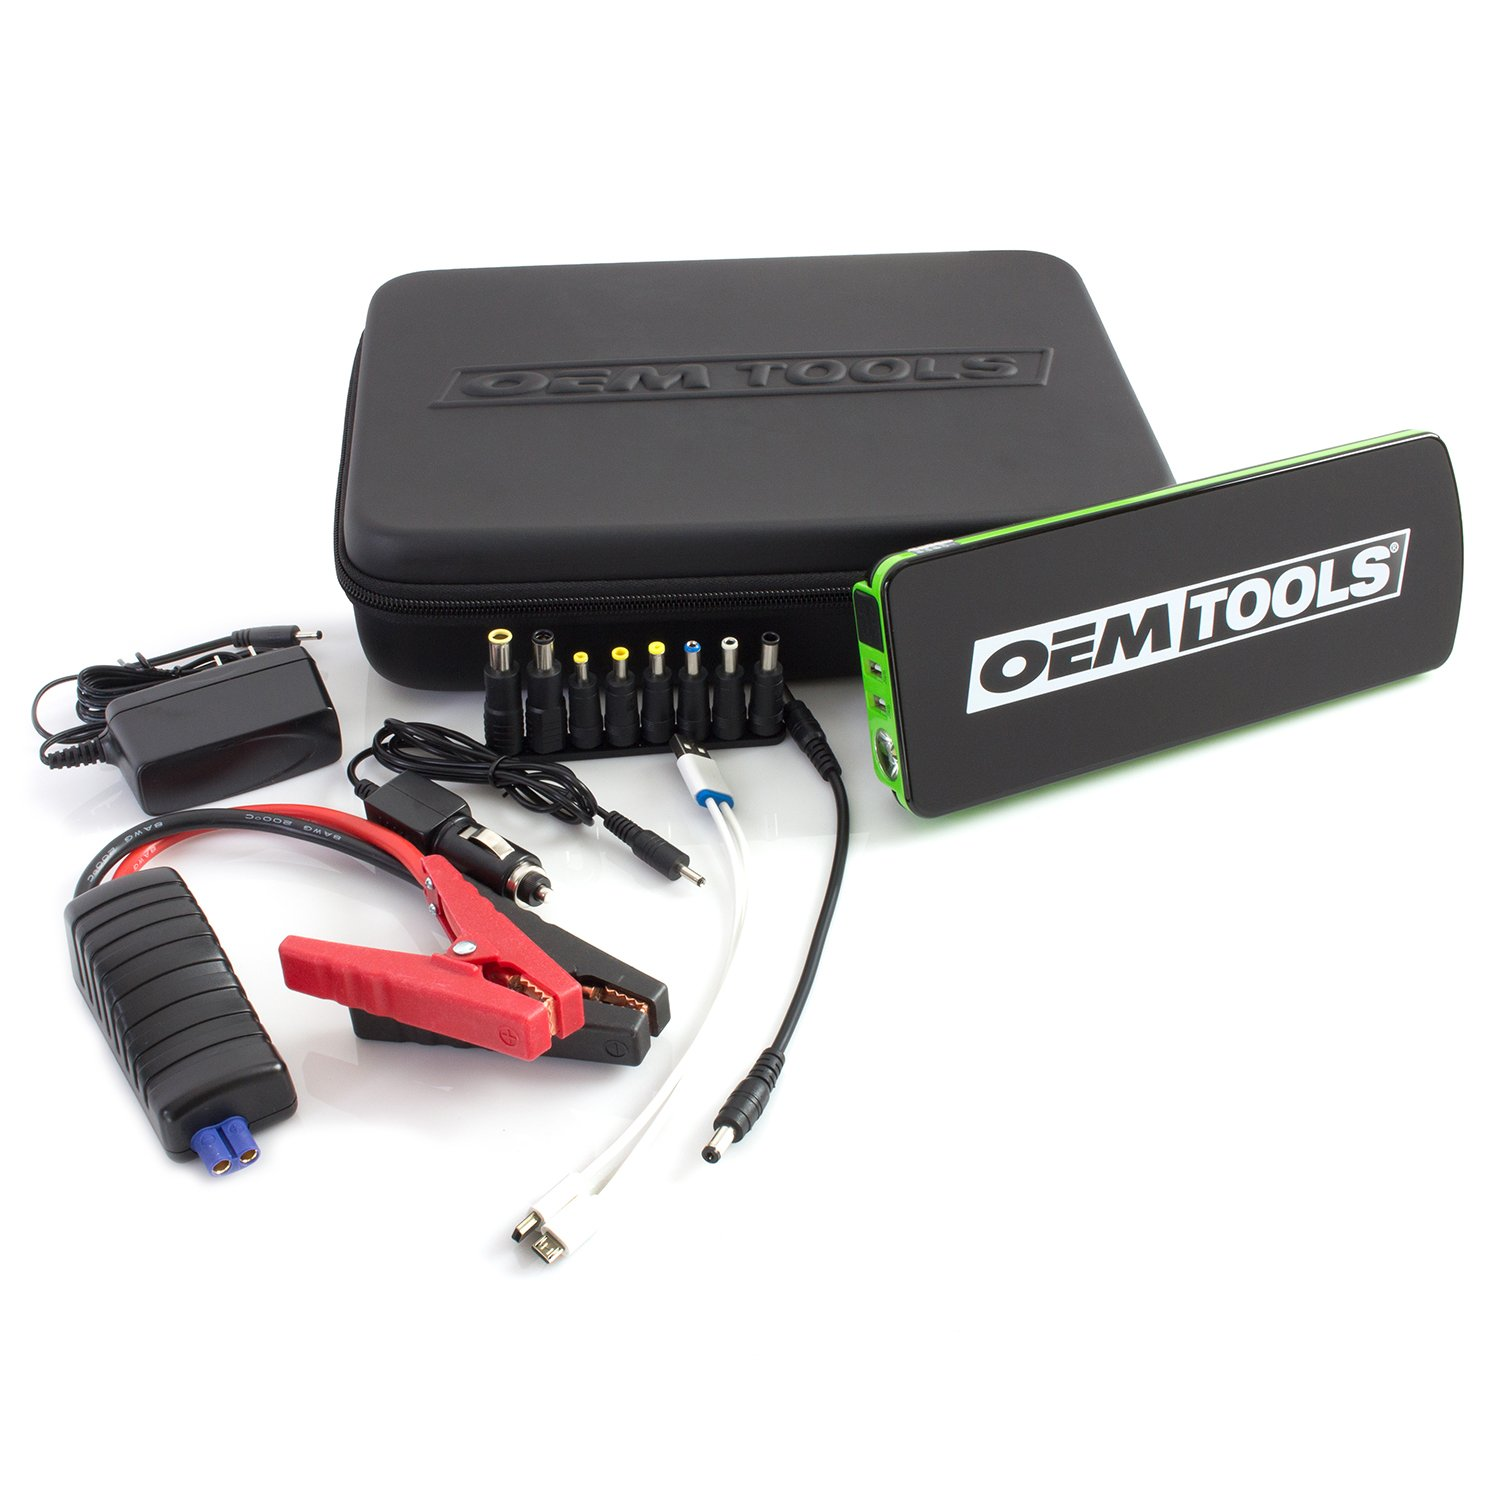 OEMTOOLS 24455 PPS-X Personal Power Source with Smart Jump Cables